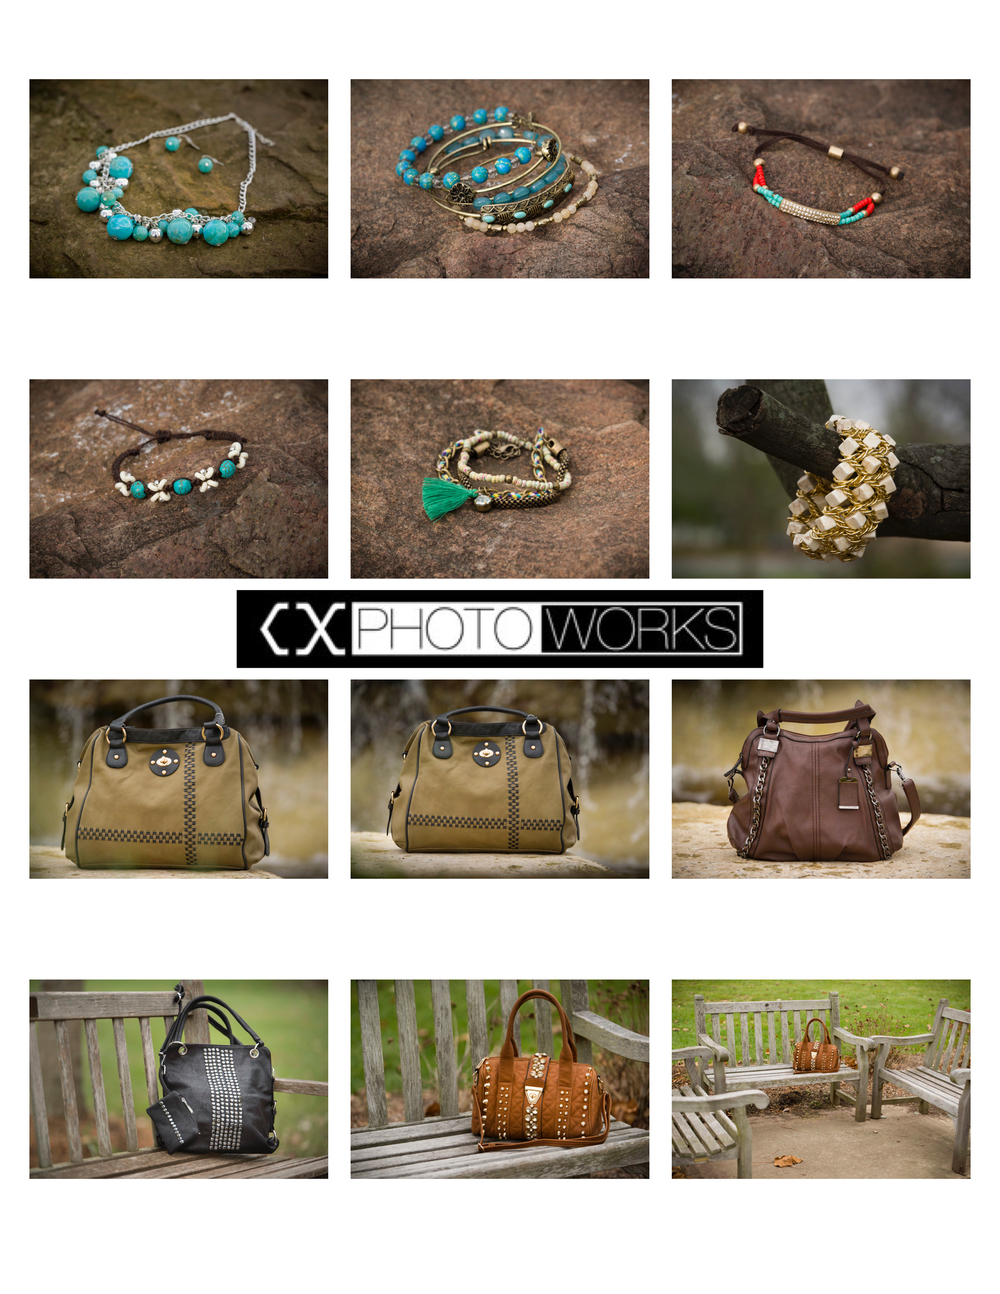 Fashion Accessories:  Jewelry & Handbags (Contact Sheet 1)